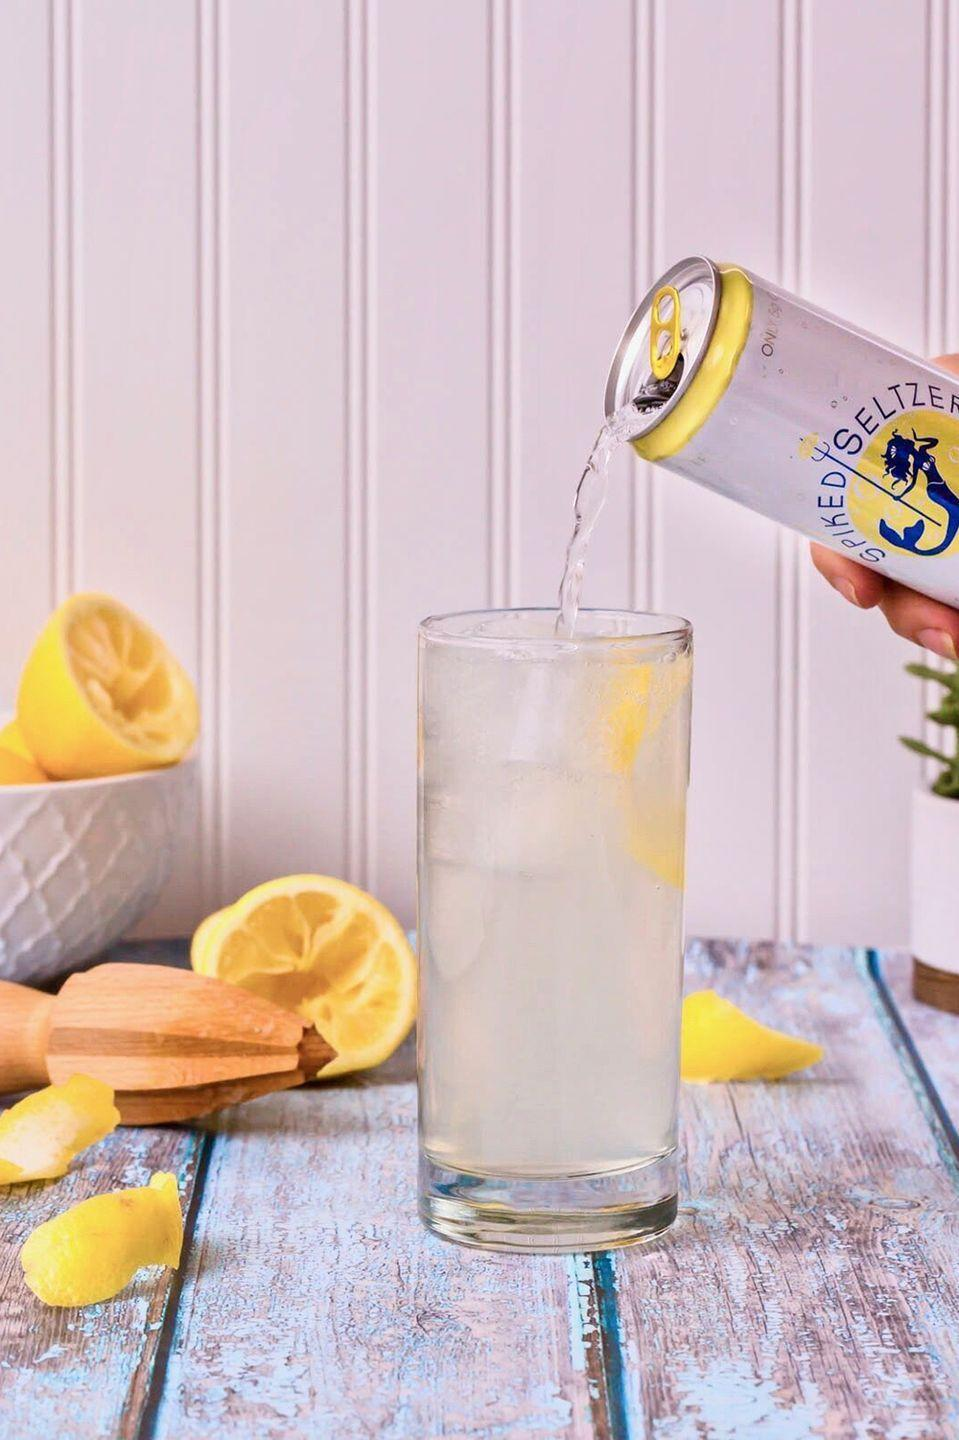 "<p><strong>Ingredients:</strong><br></p><p>1 oz. Gin</p><p>1 oz. Triple sec</p><p>½ lemon, freshly squeezed</p><p>Top with SpikedSeltzer Ventura Lemon</p><p>Serve over ice</p><p><strong>Directions: </strong></p><p>Build ingredients in a Collins glass over ice, top off with SpikedSeltzer Ventura Lemon, and stir.</p><p><em>Courtesy of </em><em><a href=""http://www.spikedseltzer.com/"" rel=""nofollow noopener"" target=""_blank"" data-ylk=""slk:SpikedSeltzer"" class=""link rapid-noclick-resp"">SpikedSeltzer</a></em></p>"